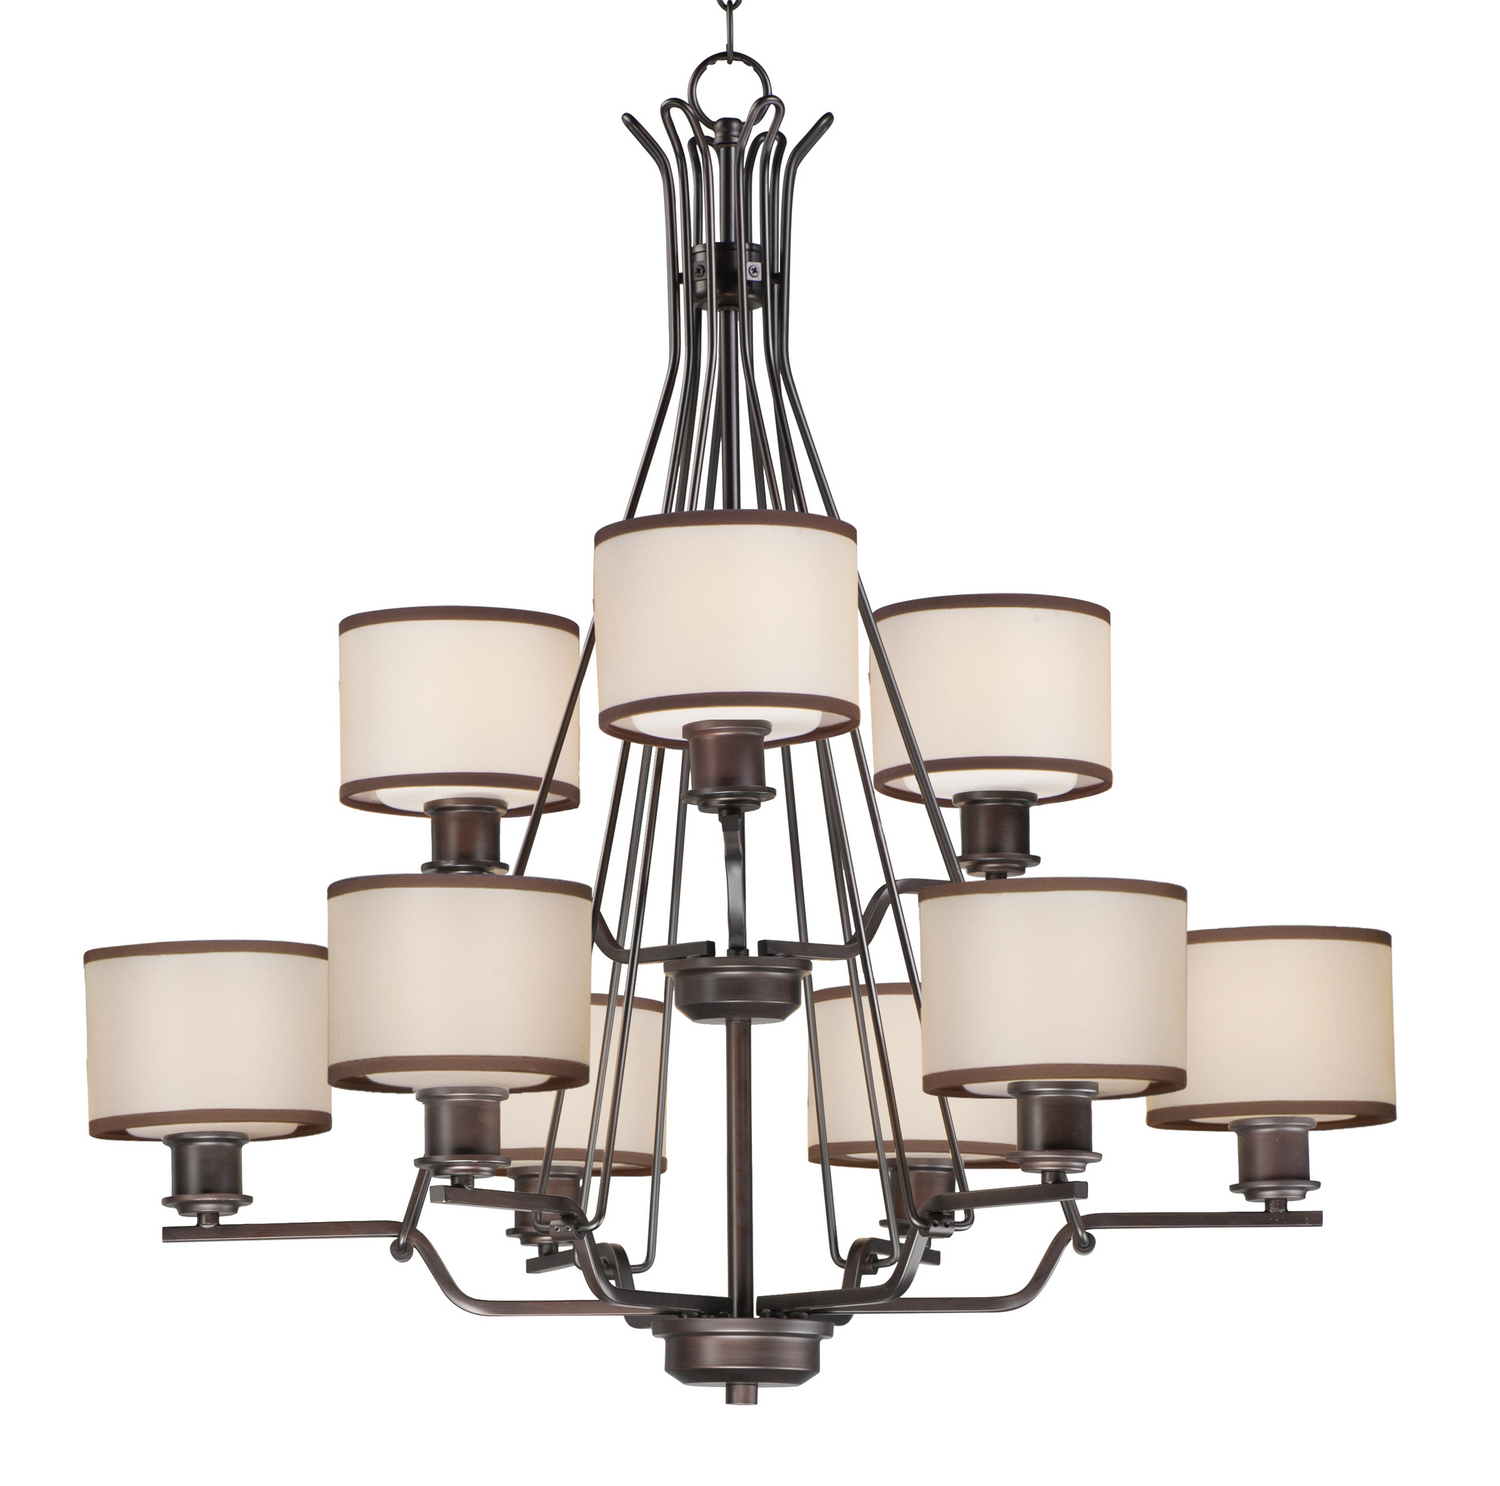 12 Light Chandelier from the Bon Ton collection by Maxim 26048SWCOOI